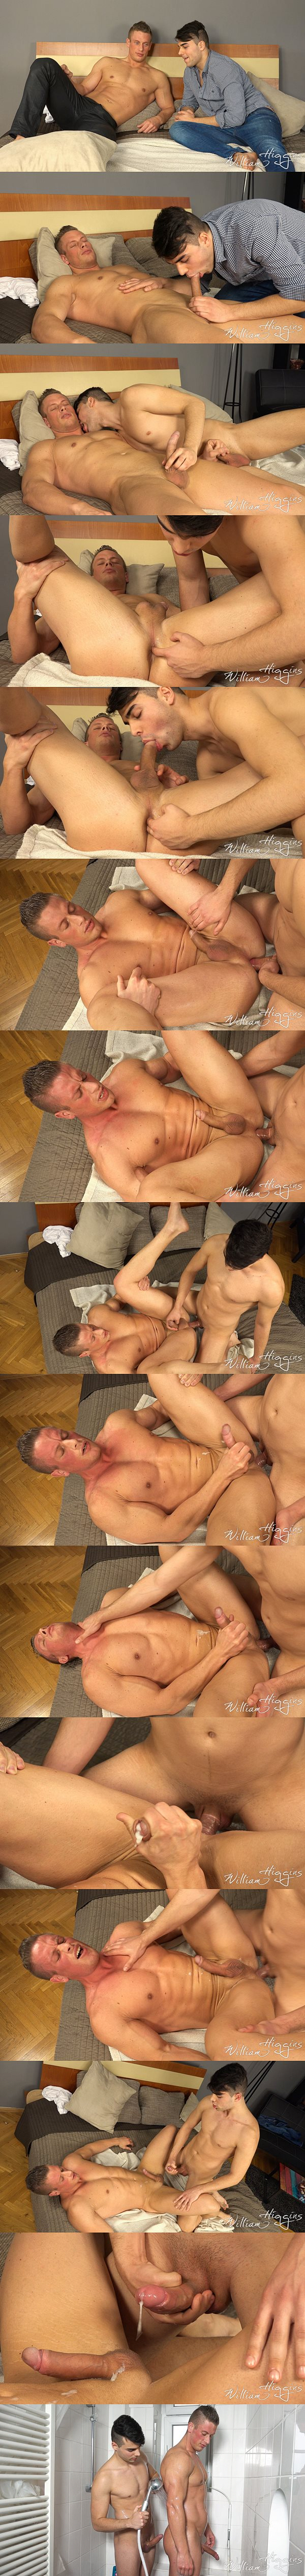 Petr Zuska pounds hot bodybuilder Tomas Decastro's tight virgin ass until he fucks the cum out of Tomas at Williamhiggins 02